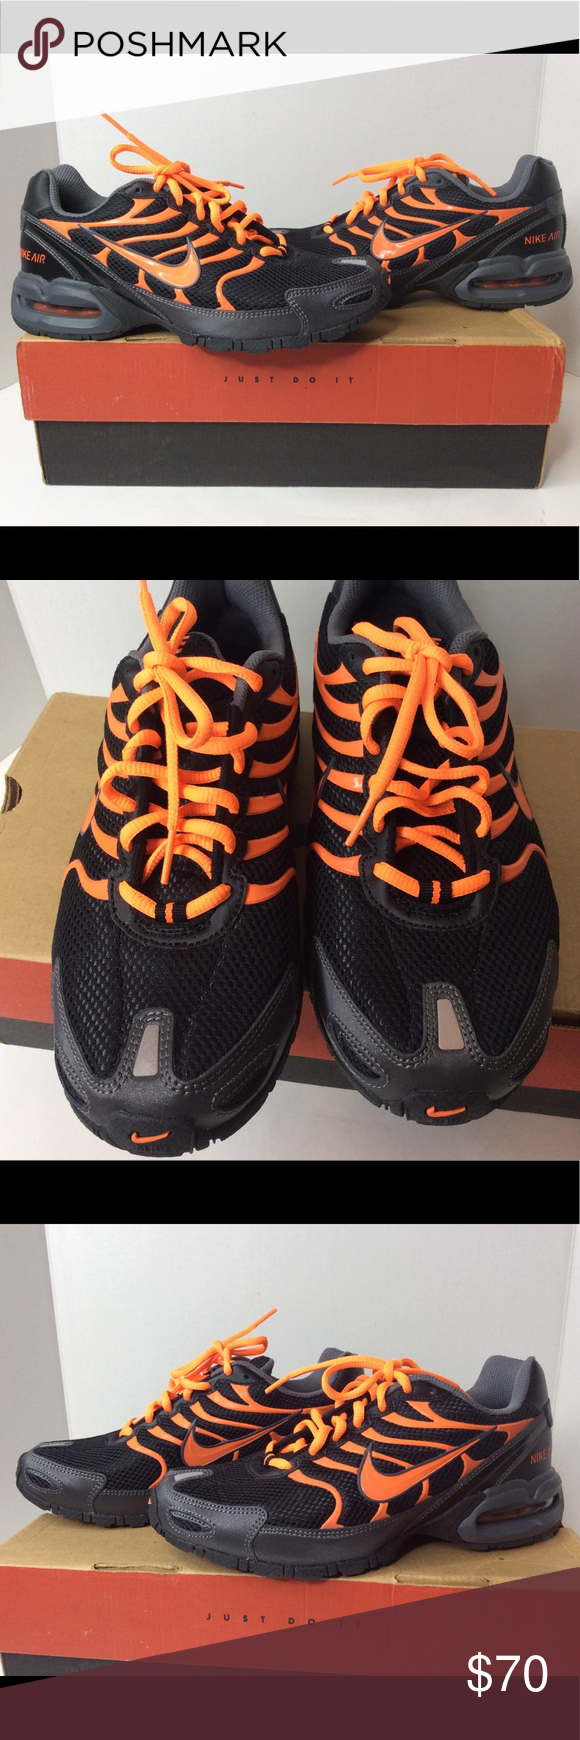 182804dabc8d NIKE Air Max Torch 4 Black Orange Sneakers 6.5Y Up for grabs is a preowned